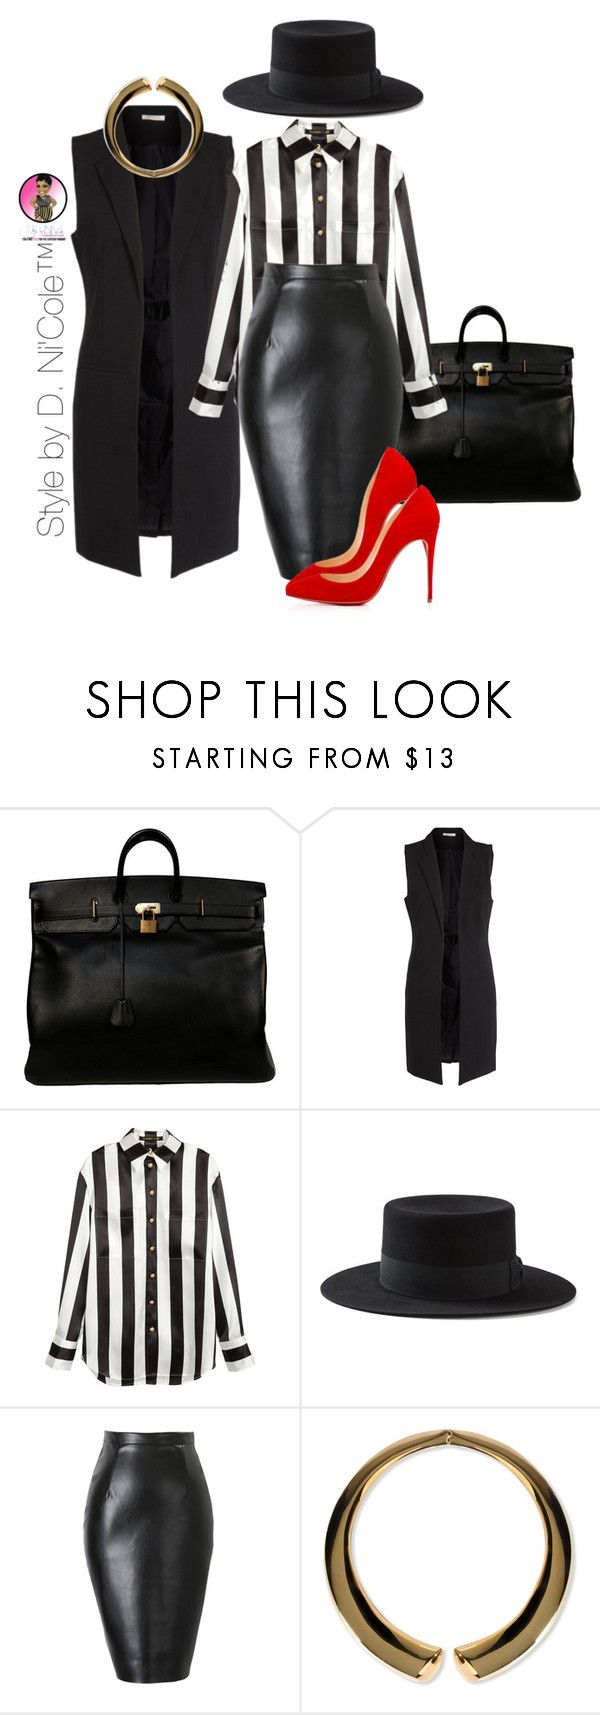 Untitled #2905 by stylebydnicole on Polyvore featuring H&M, Pieces, Yves Saint Laurent, Christian Louboutin, Hermès, Giuseppe Zanotti, women's clothing, women's fashion, women and female